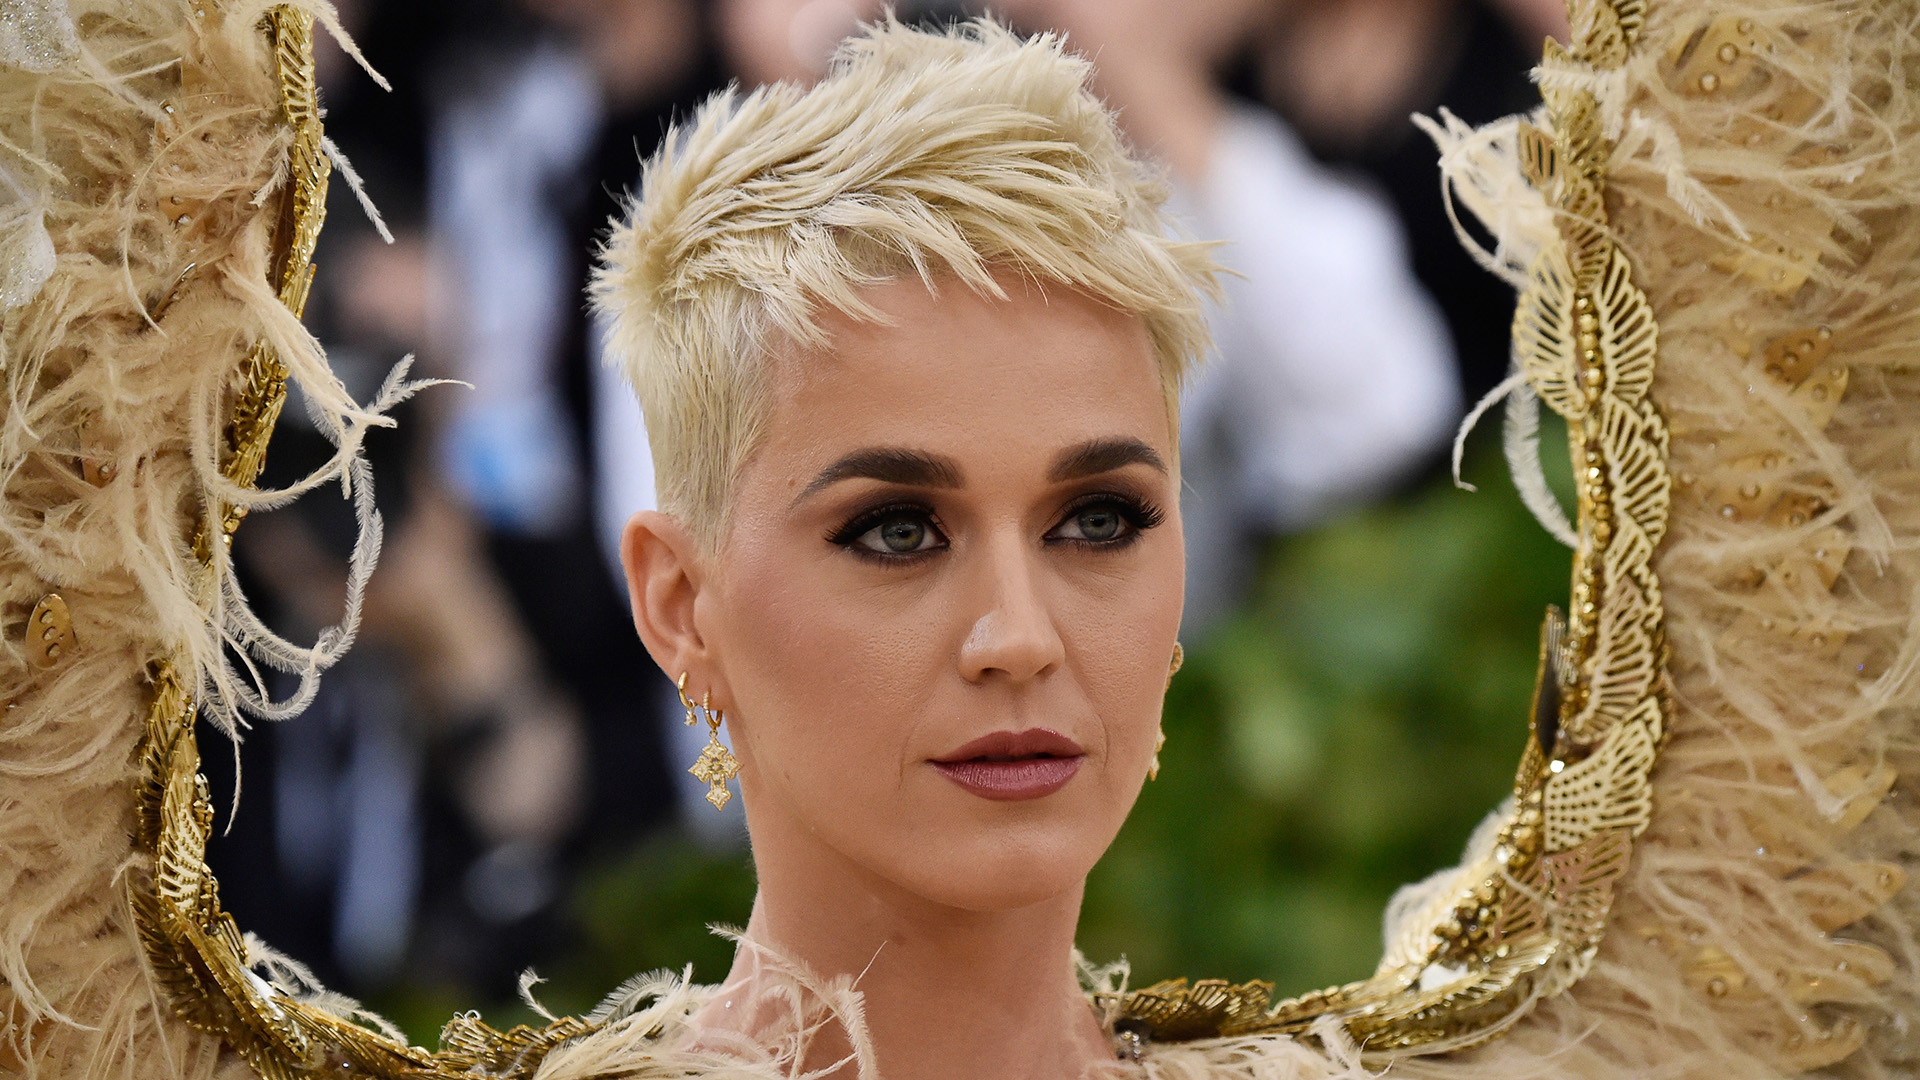 We Haven't Seen Katy Perry's Hair Like This in a Long Time